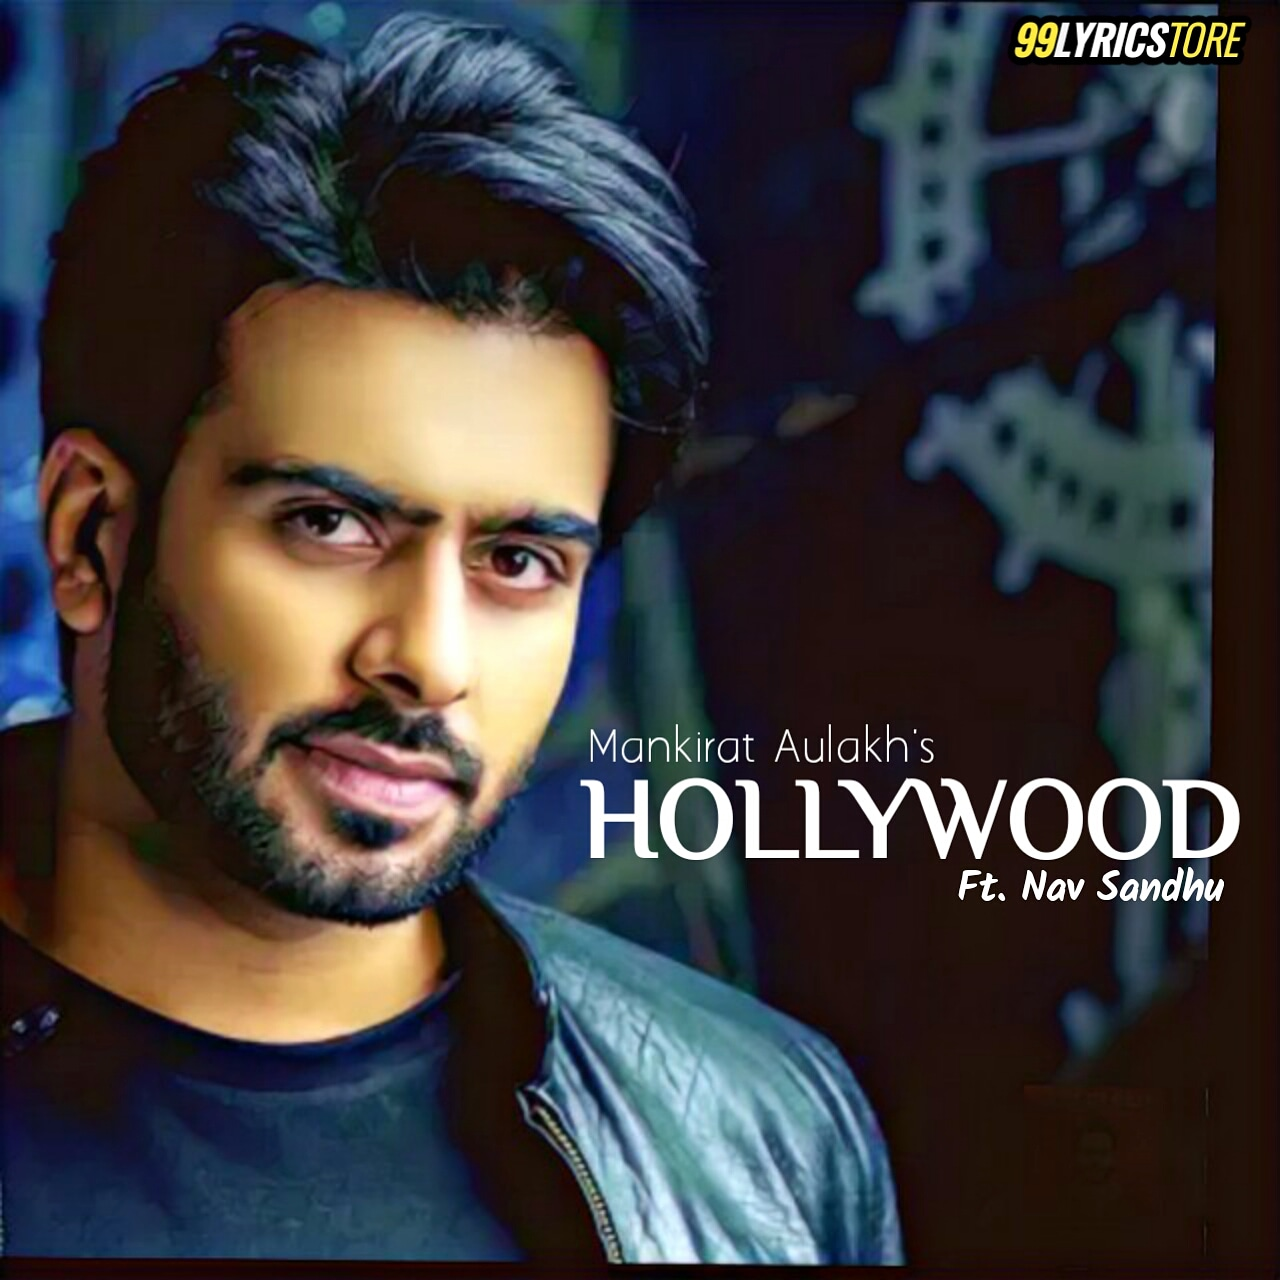 Hollywood Punjabi song Lyrics sung by Mankirat Aulakh